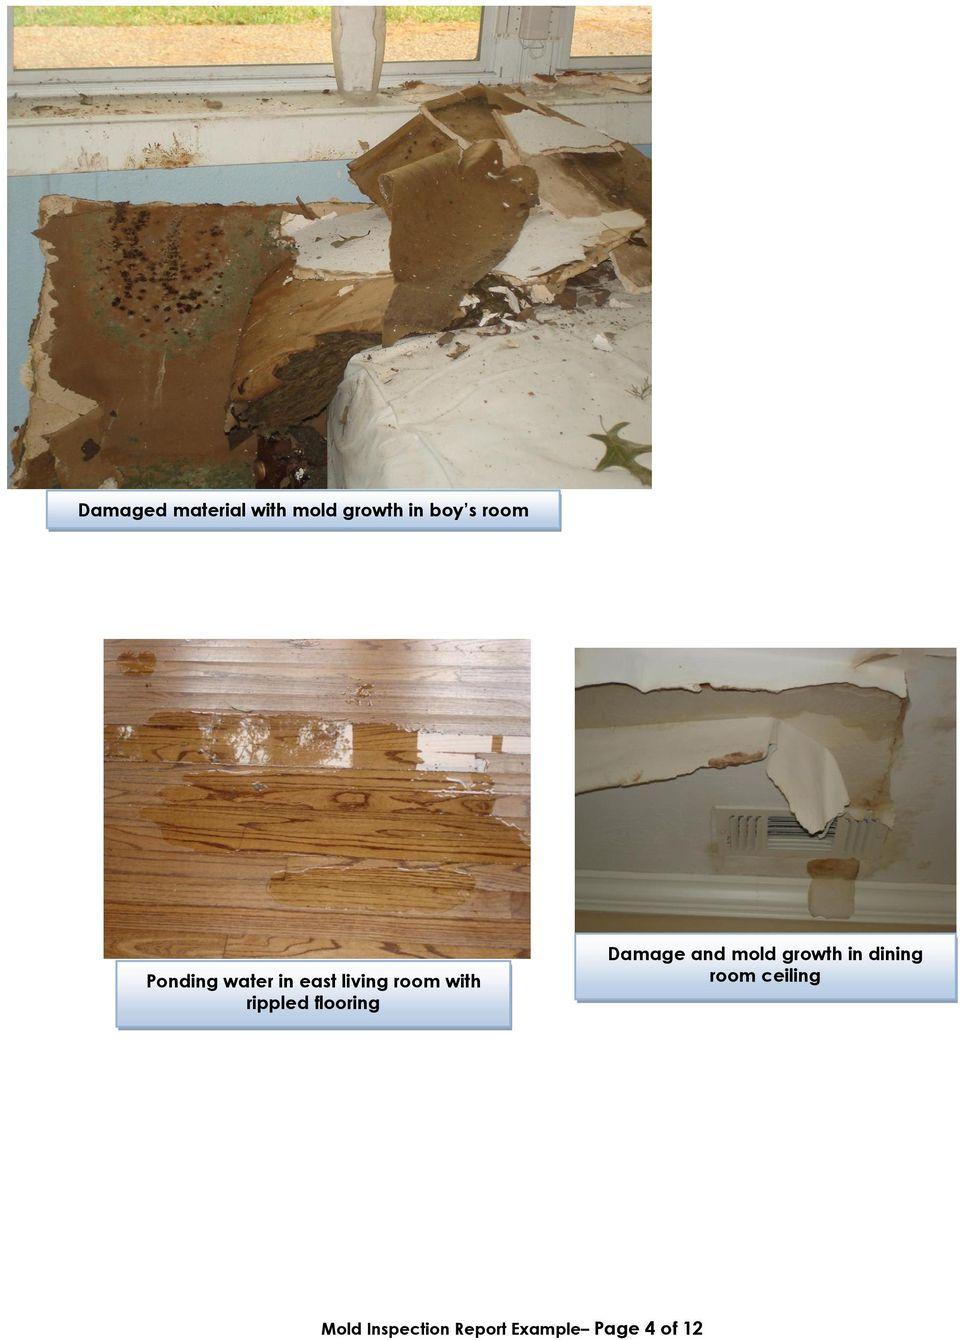 flooring Damage and mold growth in dining room